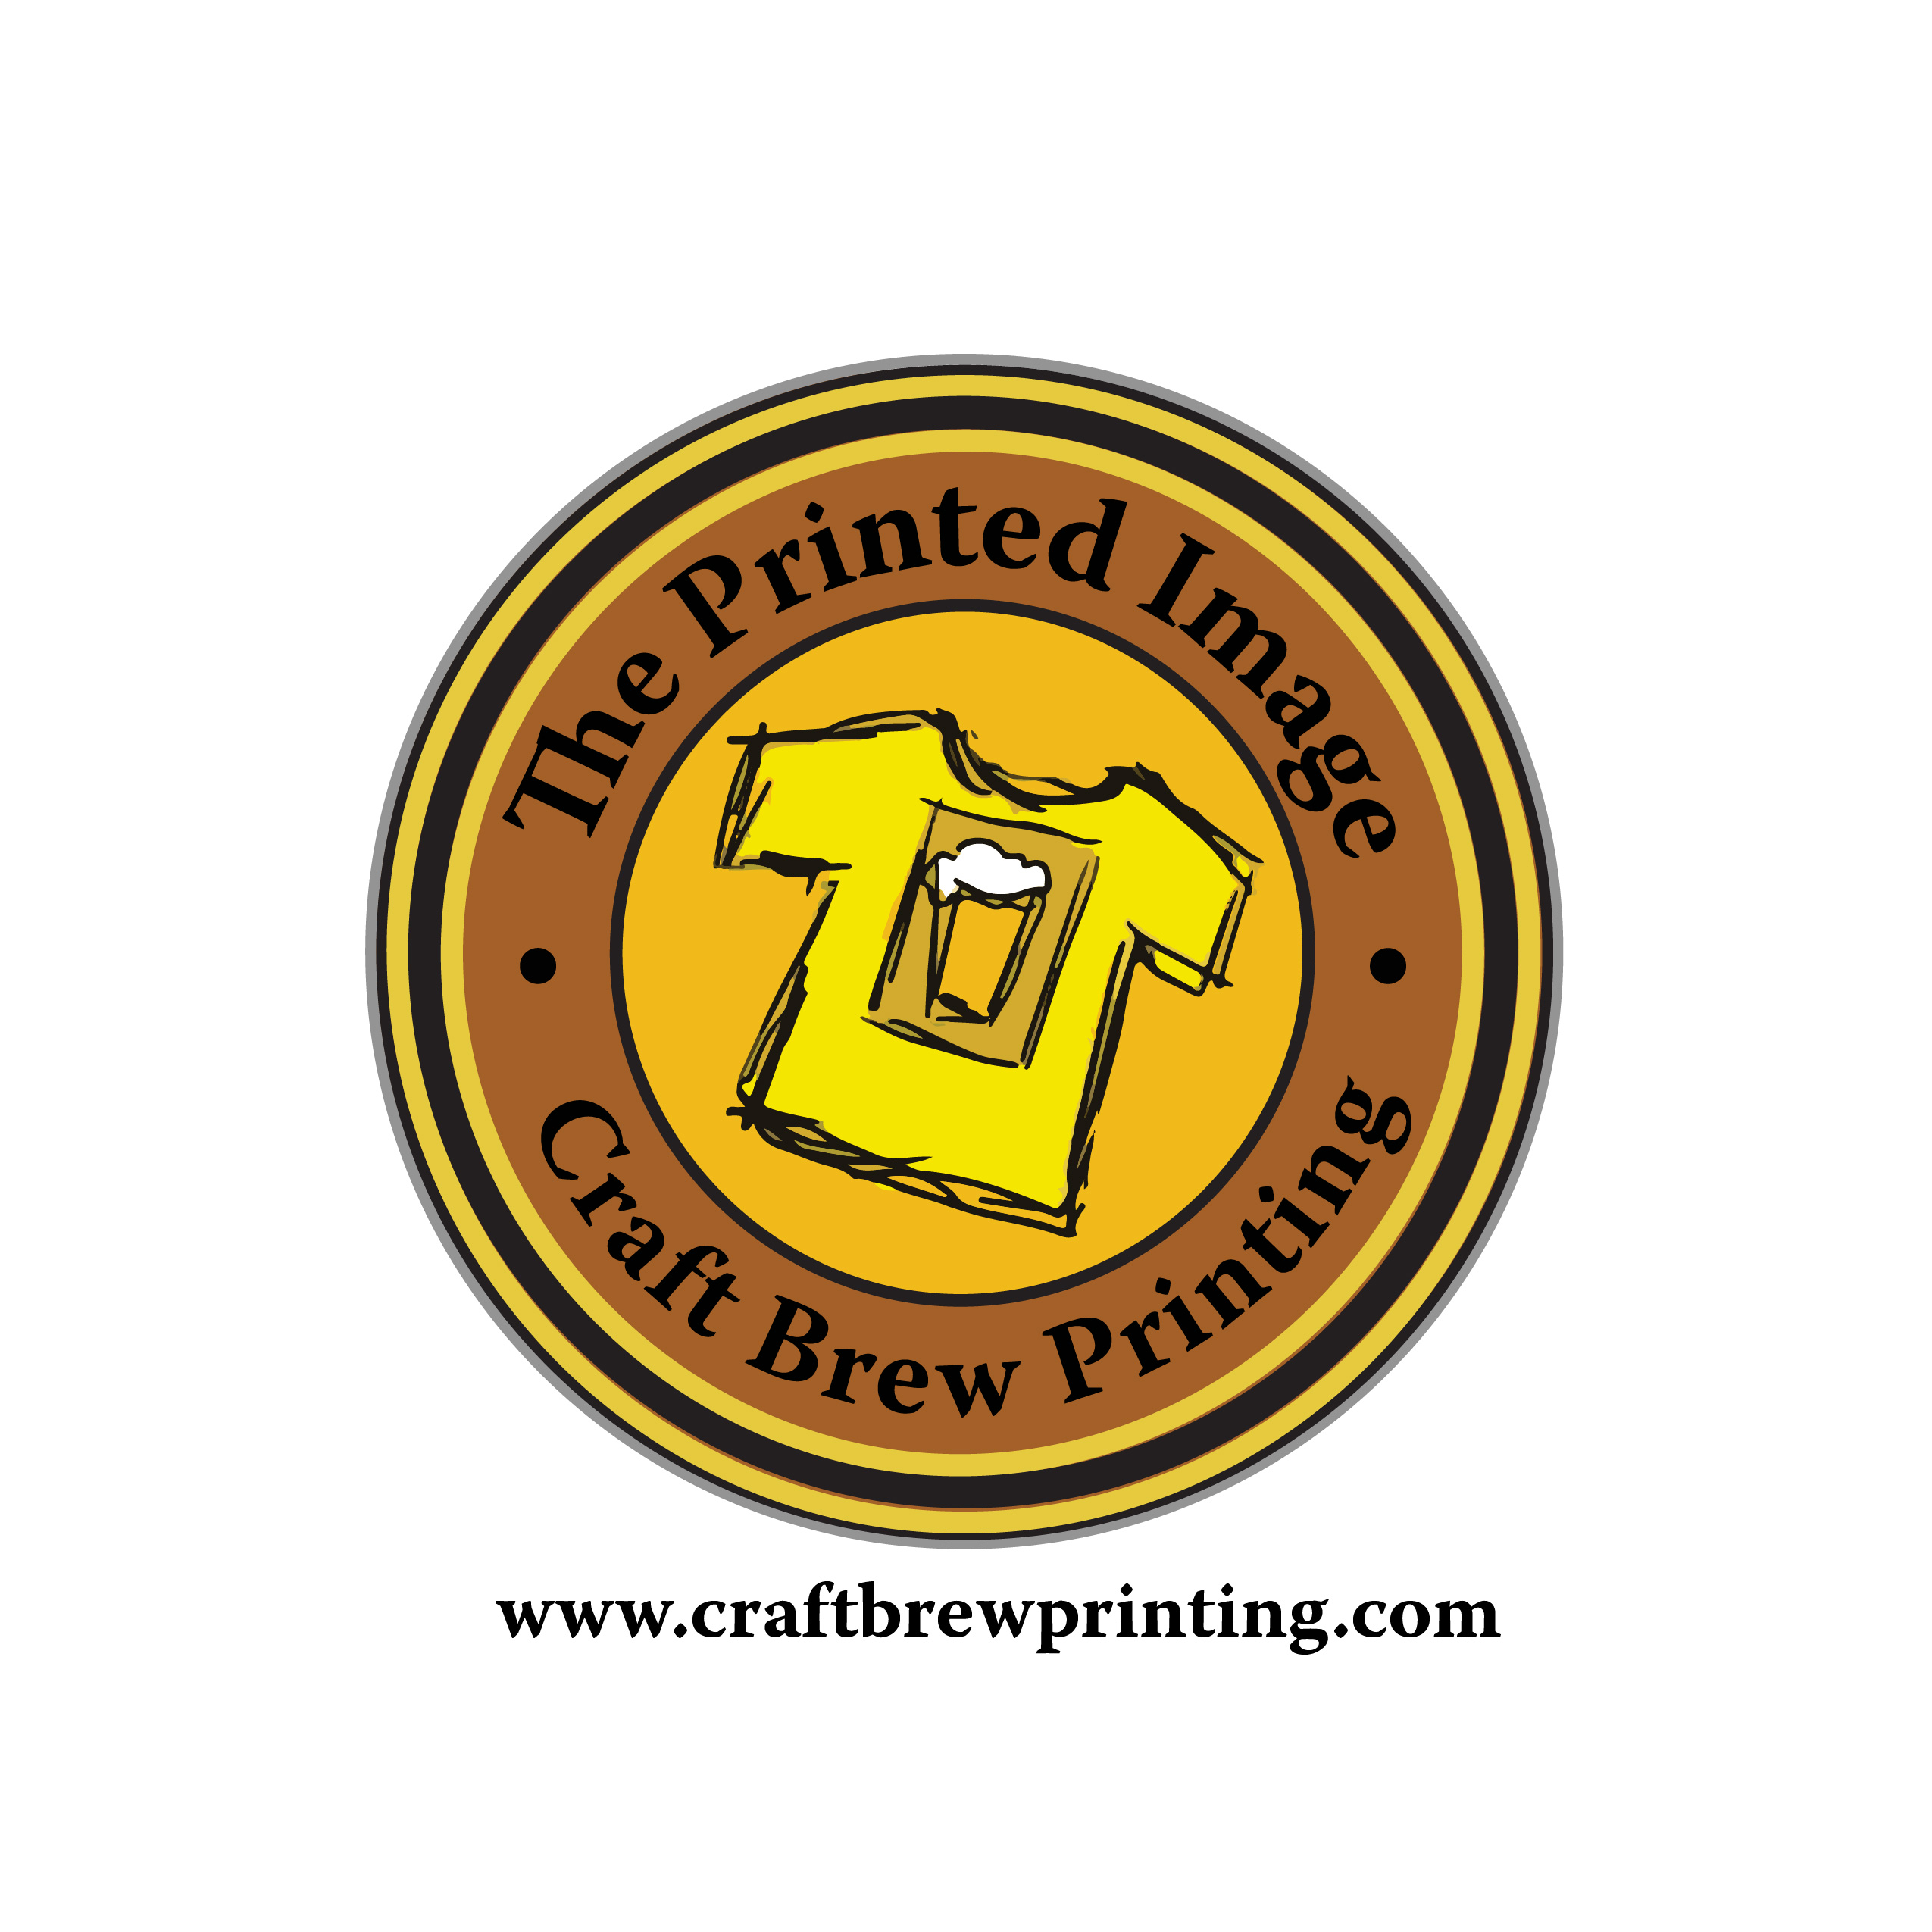 Craft Brew Printing (The Printed Image)